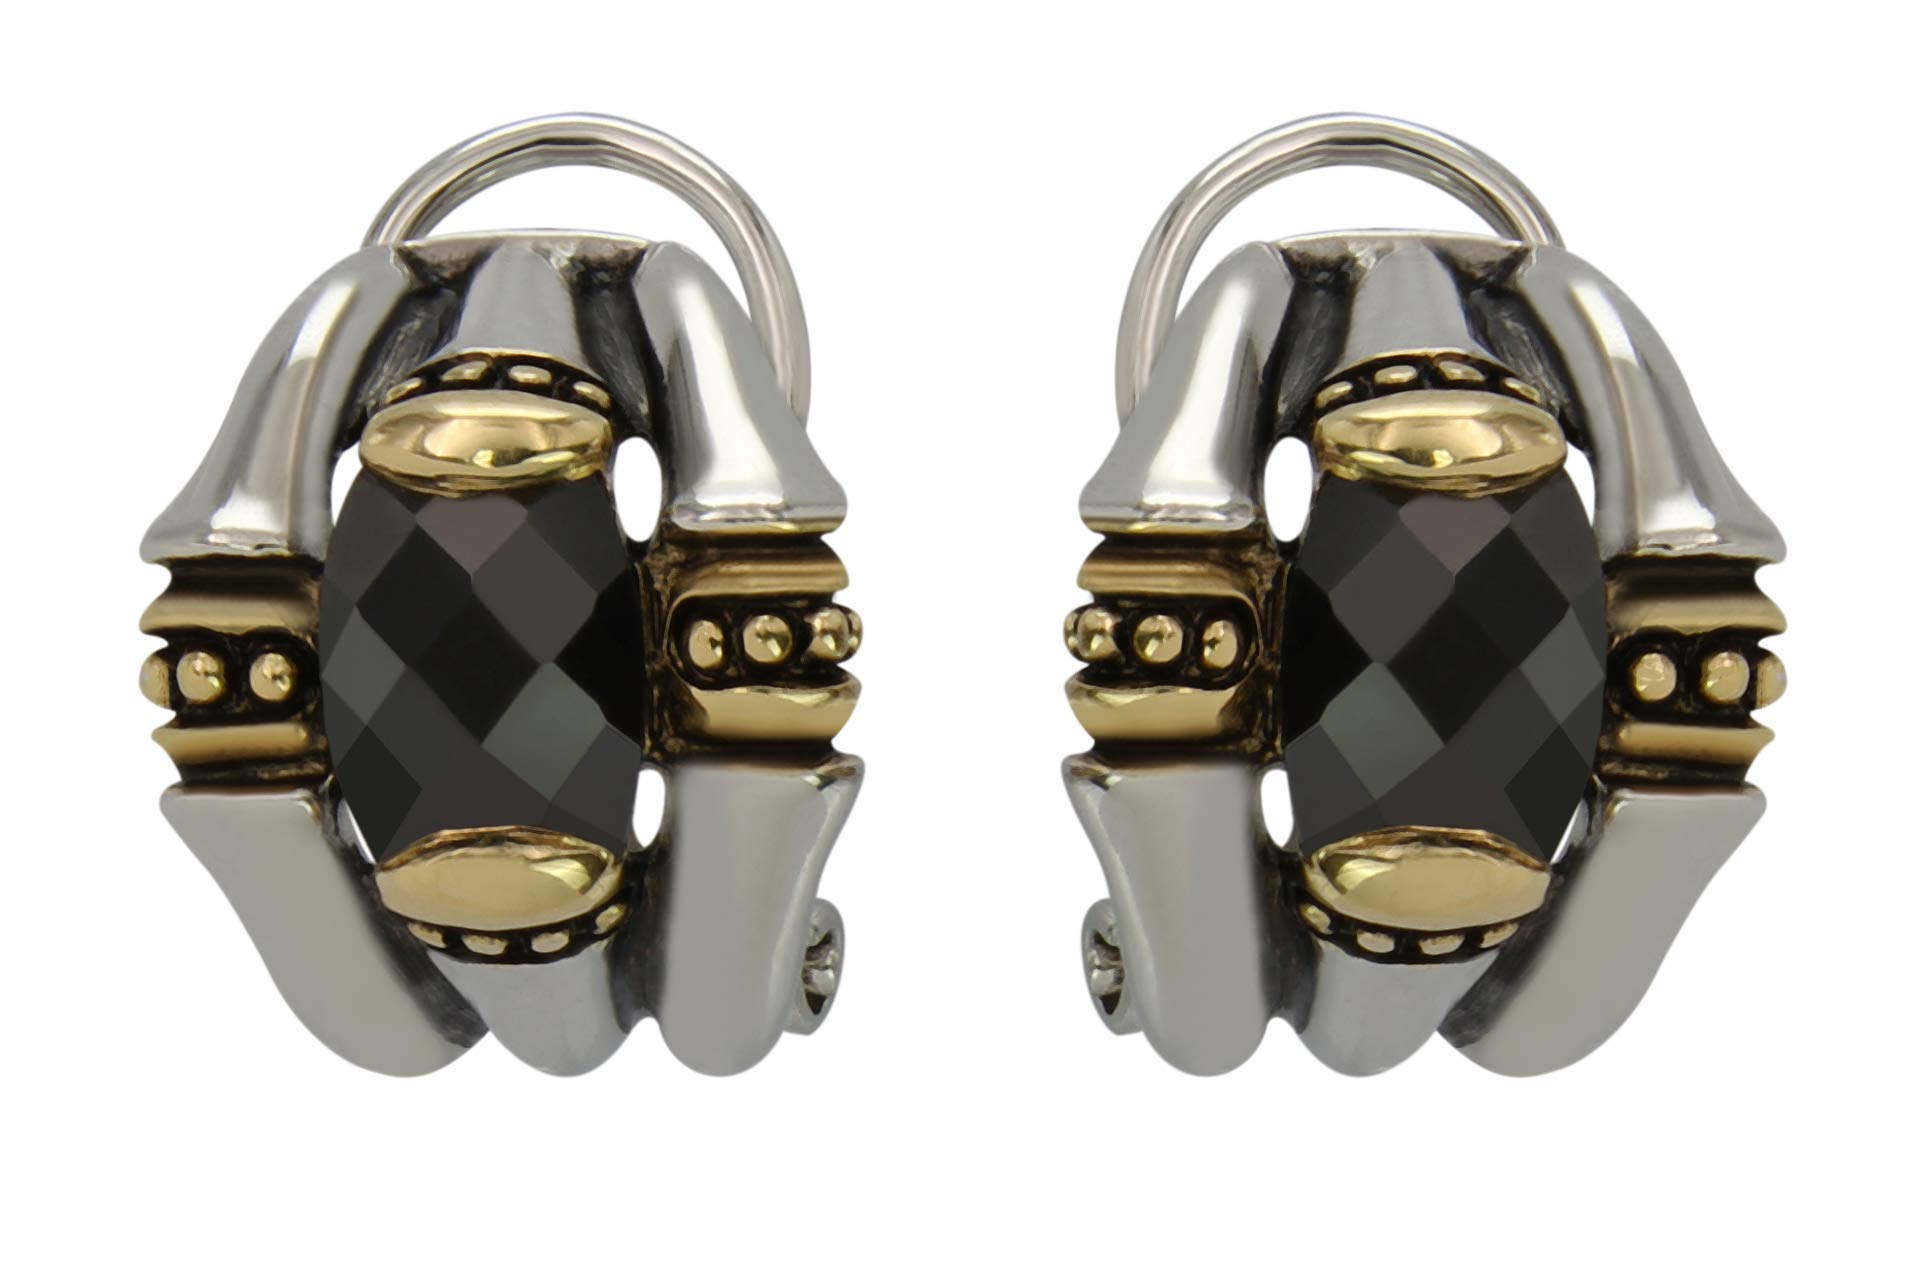 John Medeiros Two-Tone Omega Clip Post Earrings with Black Cubic Zirconia Made in The USA